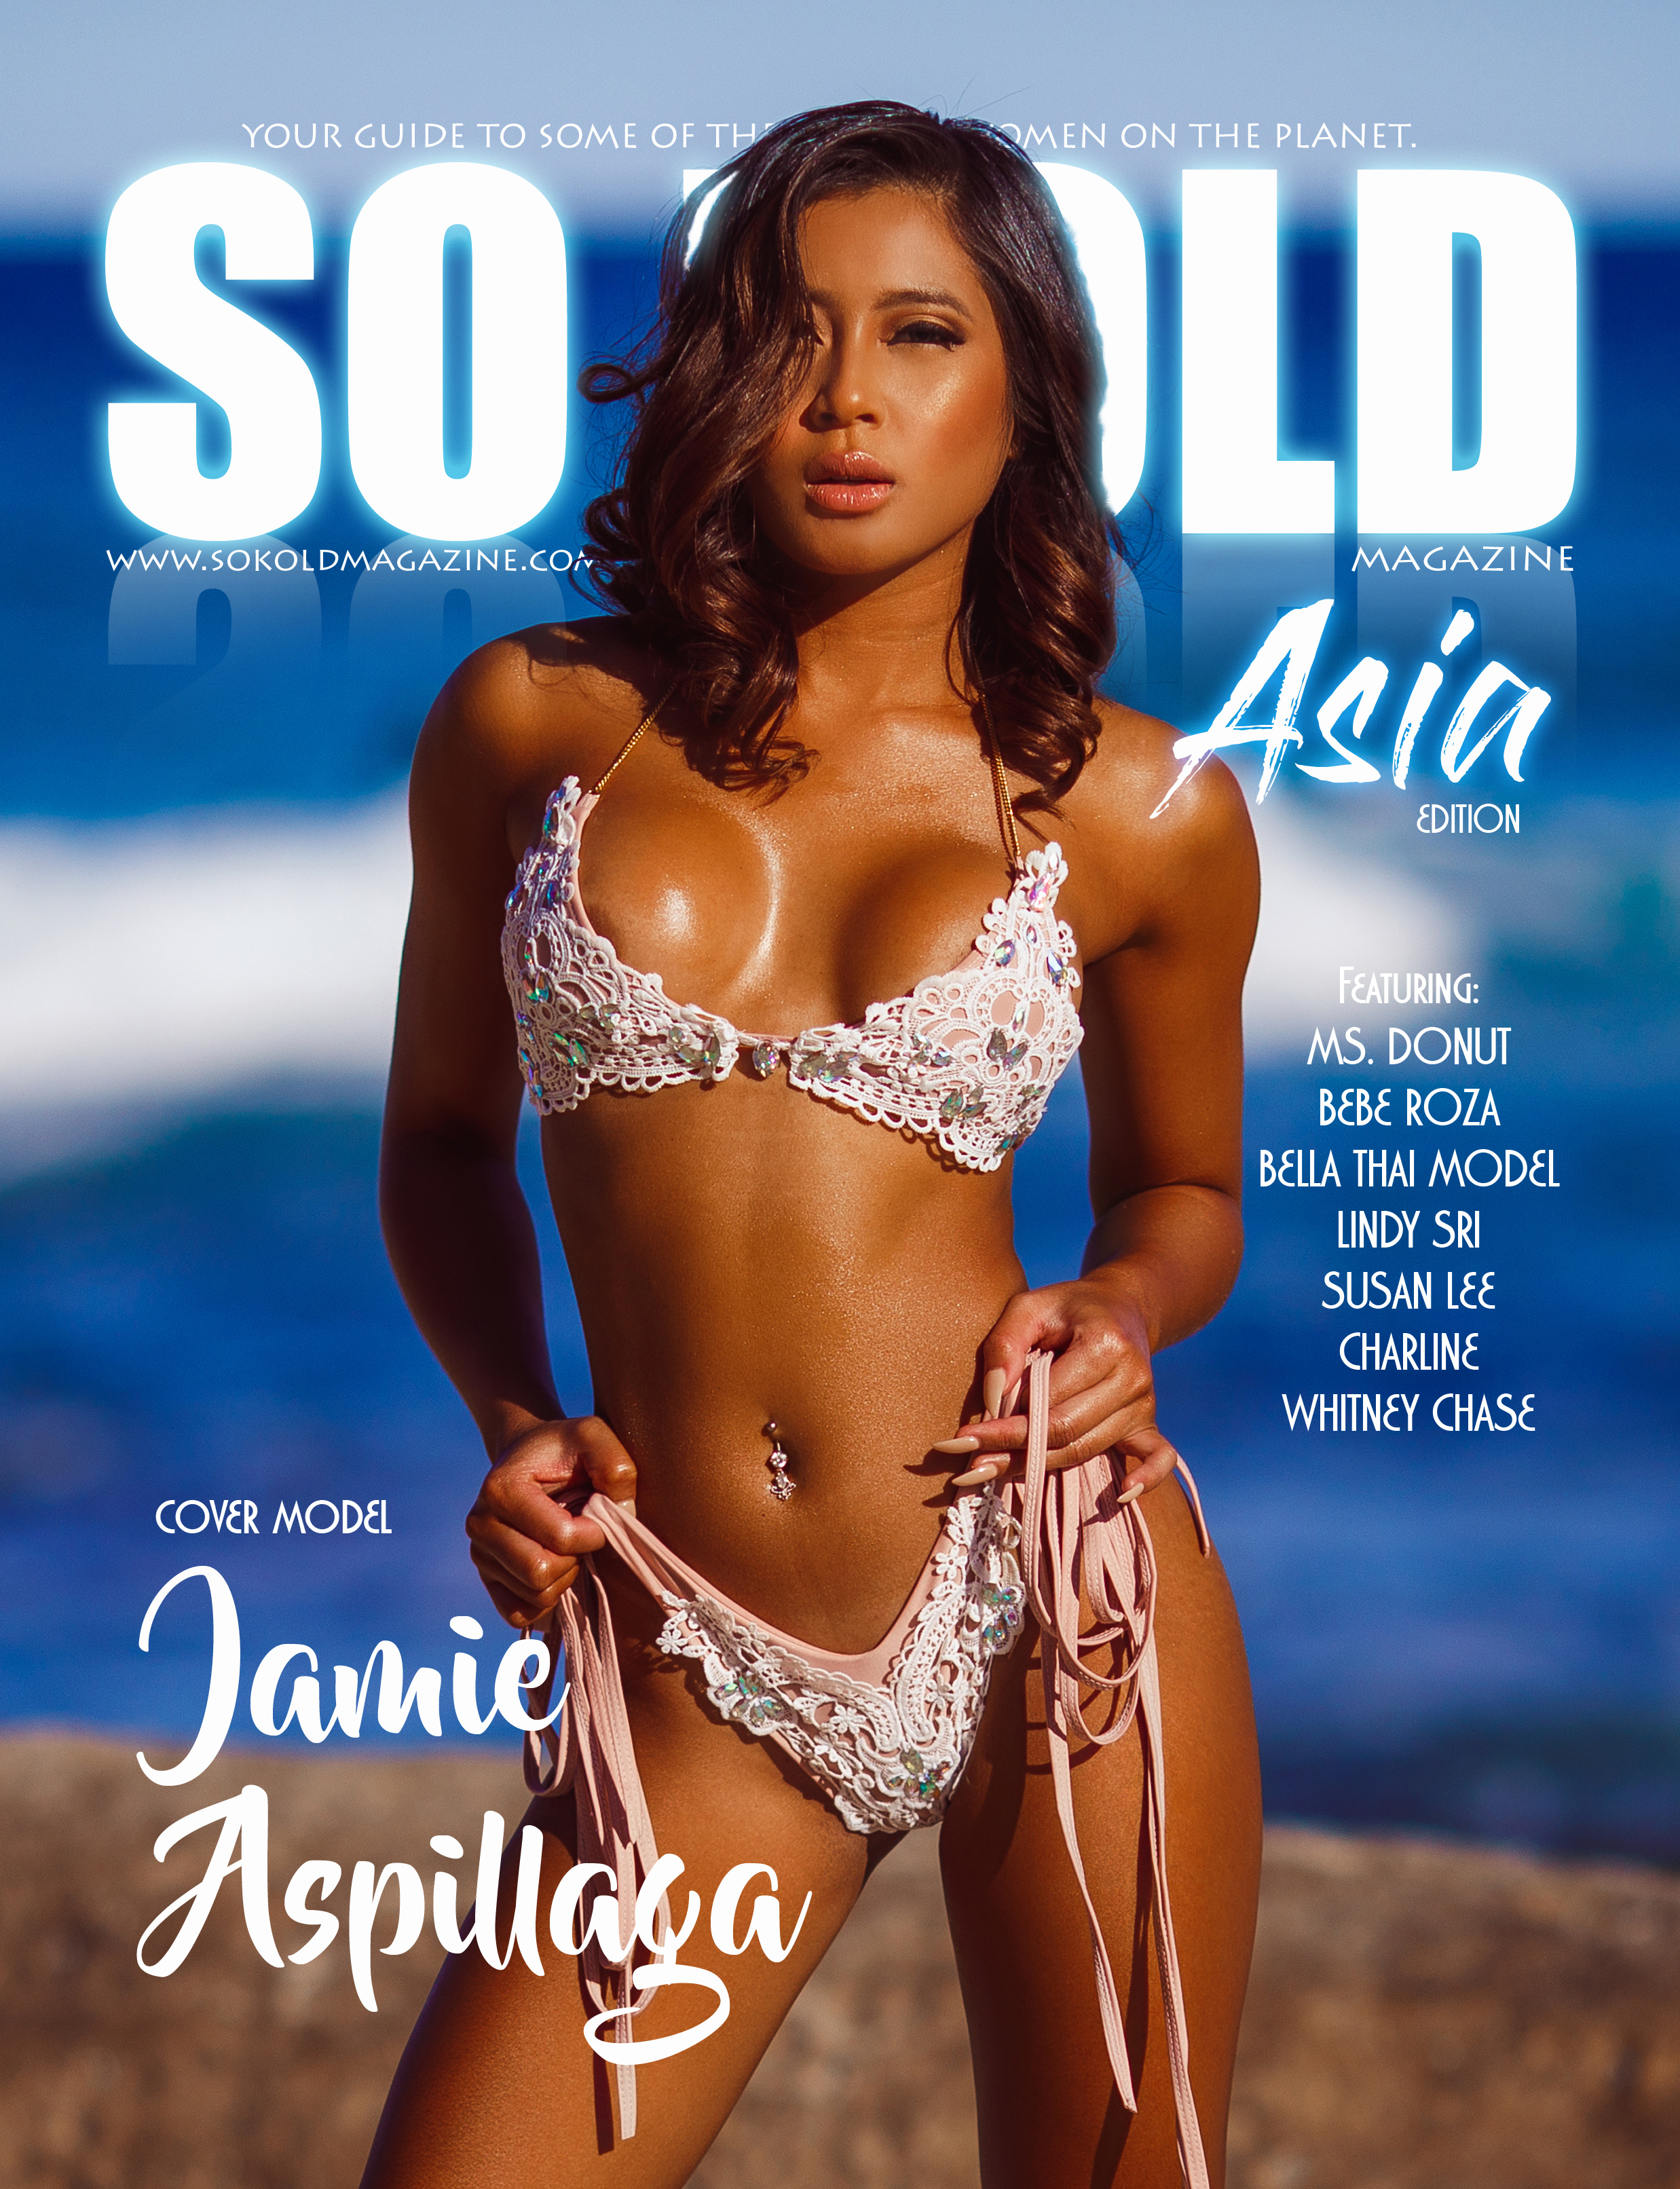 SO KOLD MAGAZINE - ASIA EDITION - Well we wanted to start 2019 off on a global scale and what better to do that than by invading South East Asia bringing you 8 beautiful women…..enjoy this first of many issues to come out of 2019.Featured:Cover Models: JAMIE ASPILLAGA, LINDY SRIInside Features:MS.DONUT, BEBE ROZA, BELLA THAI MODEL, SUSAN LEE, WHITNEY CHASE, CHARLINE